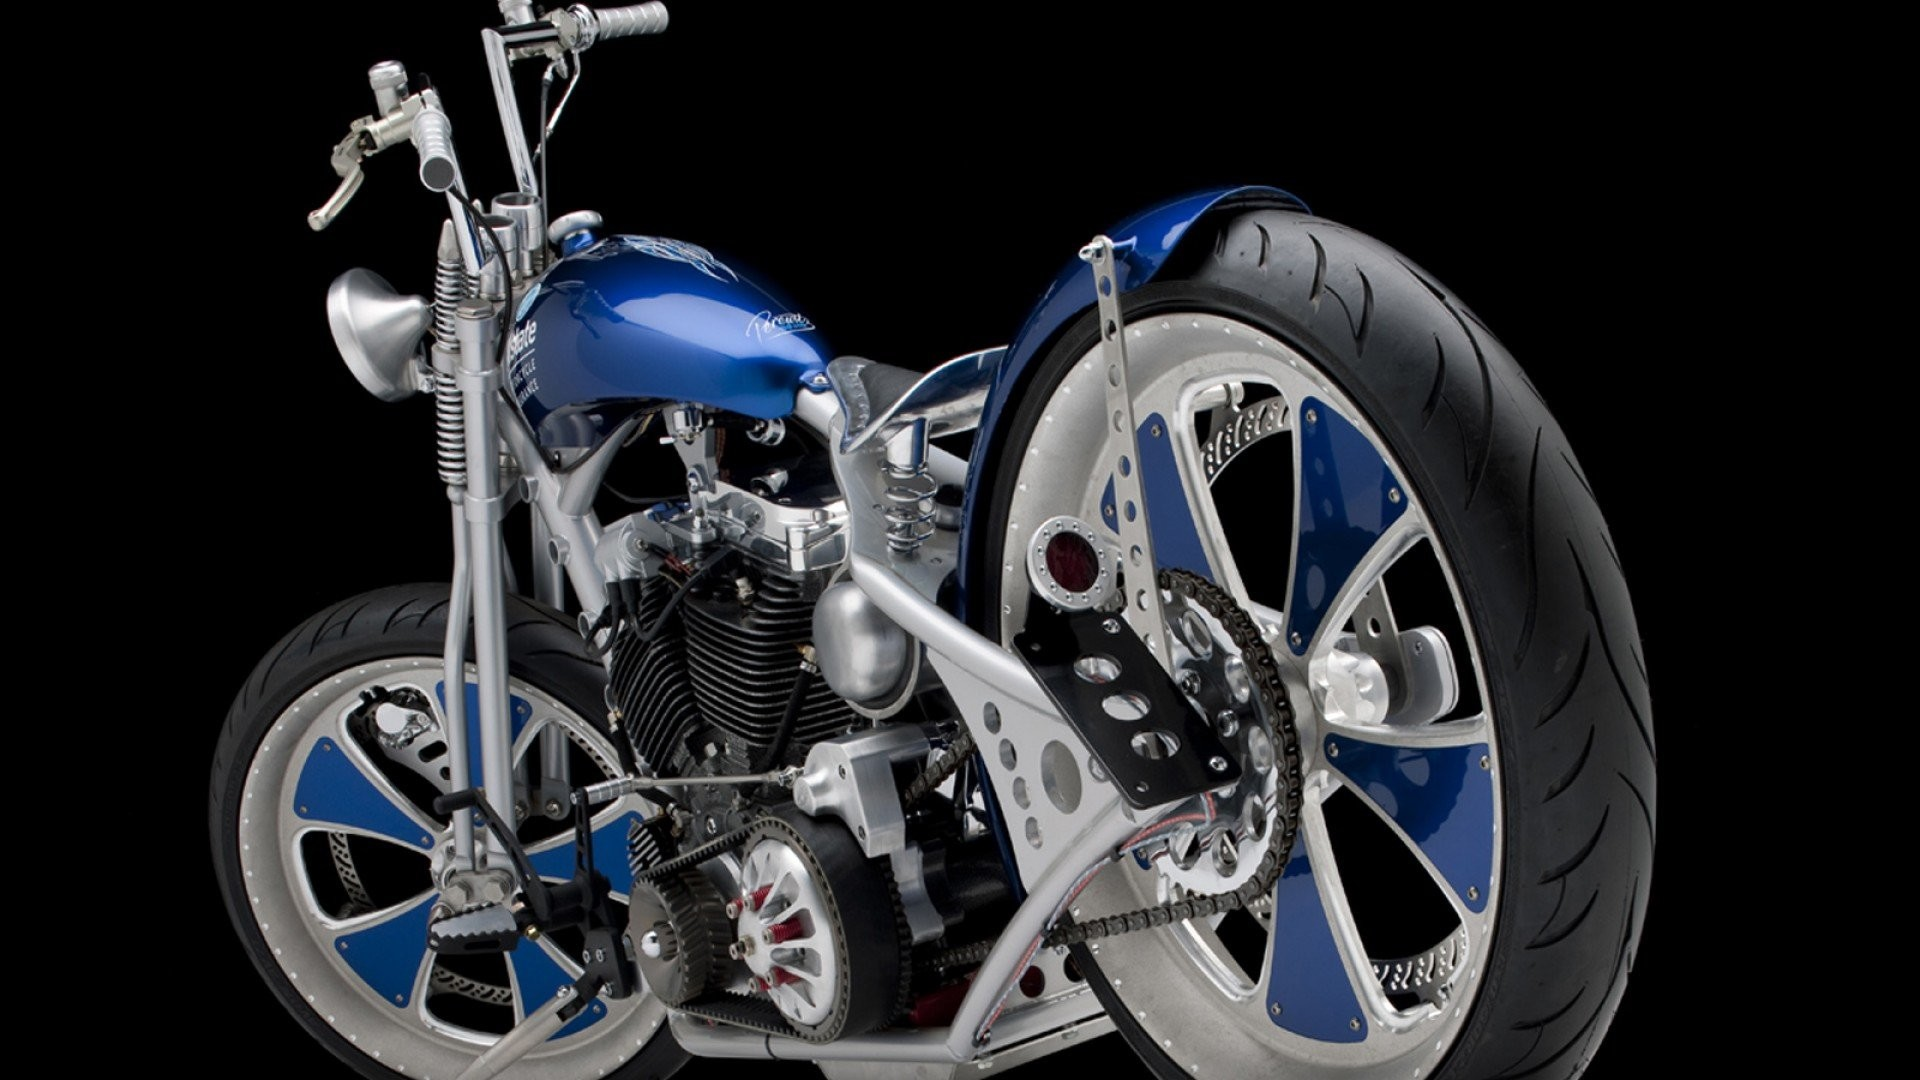 Res: 1920x1080, bobber motorcycle